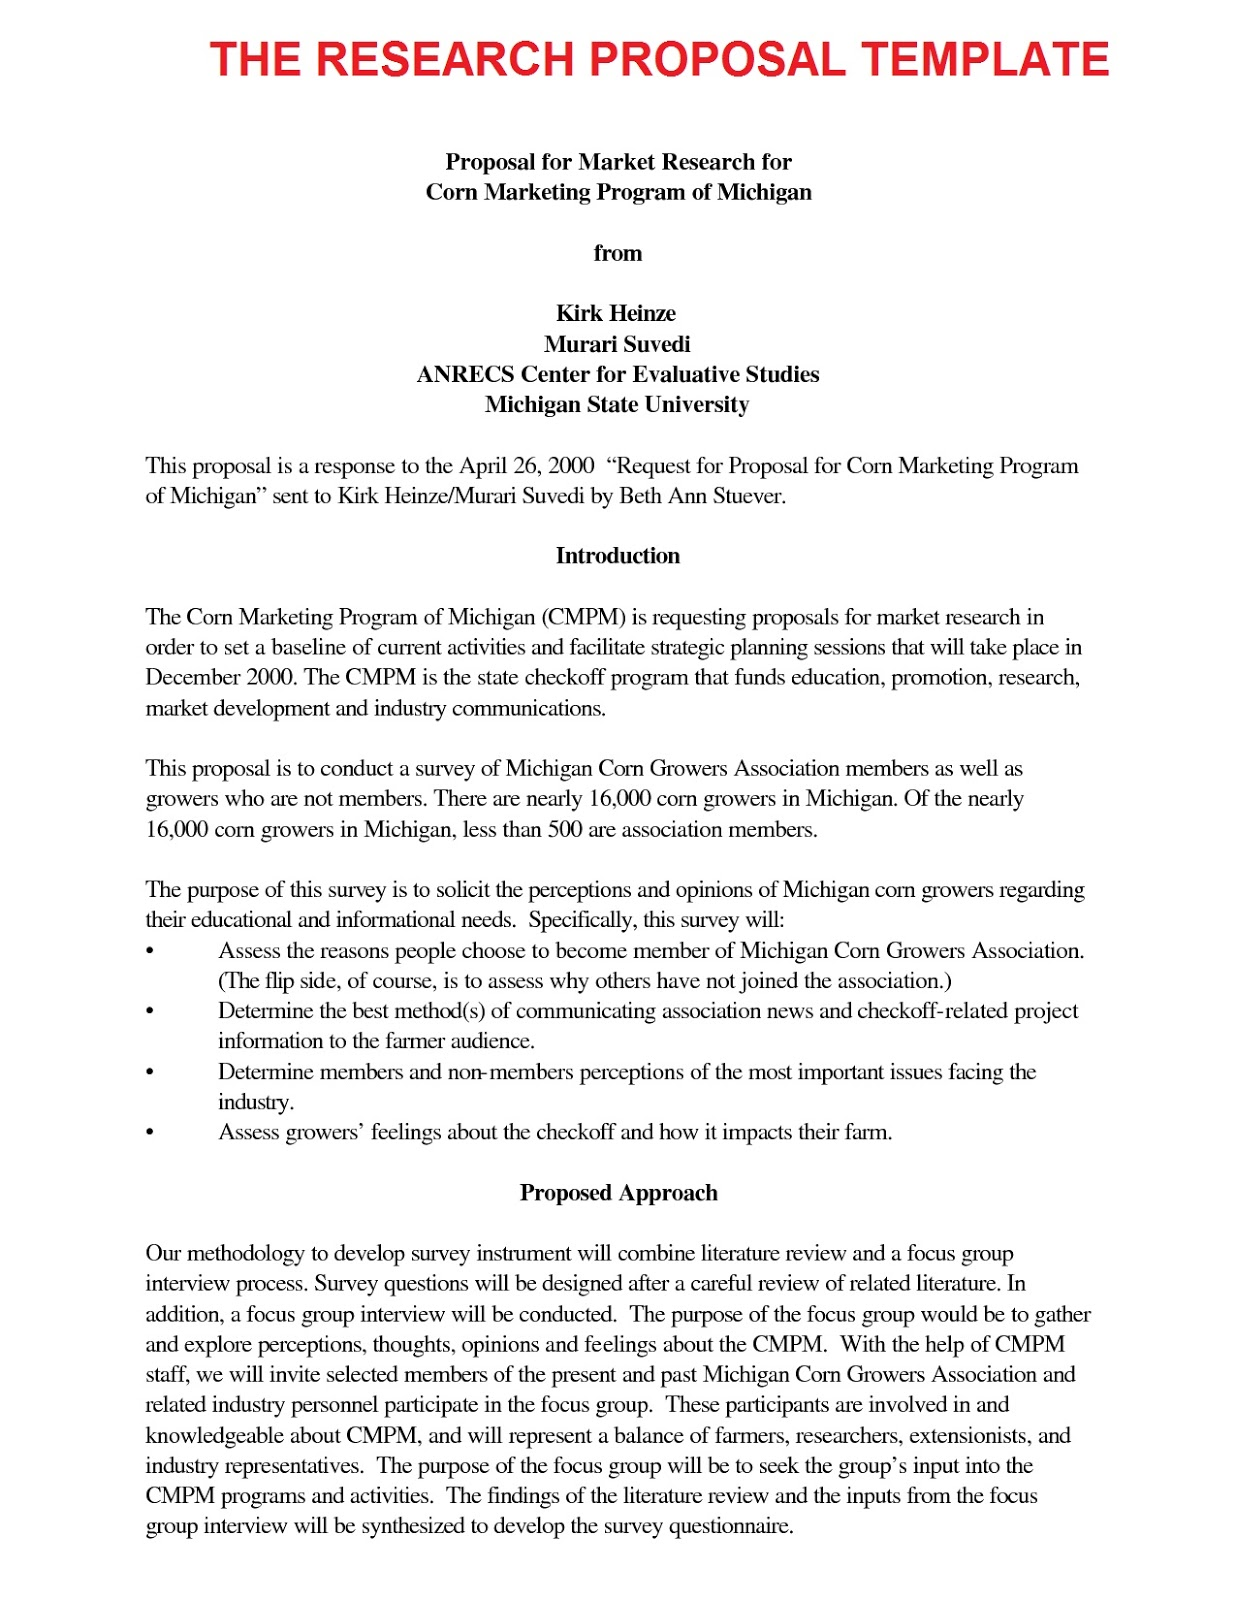 Apa Style Research Proposal Sample Hospi Noiseworks Co